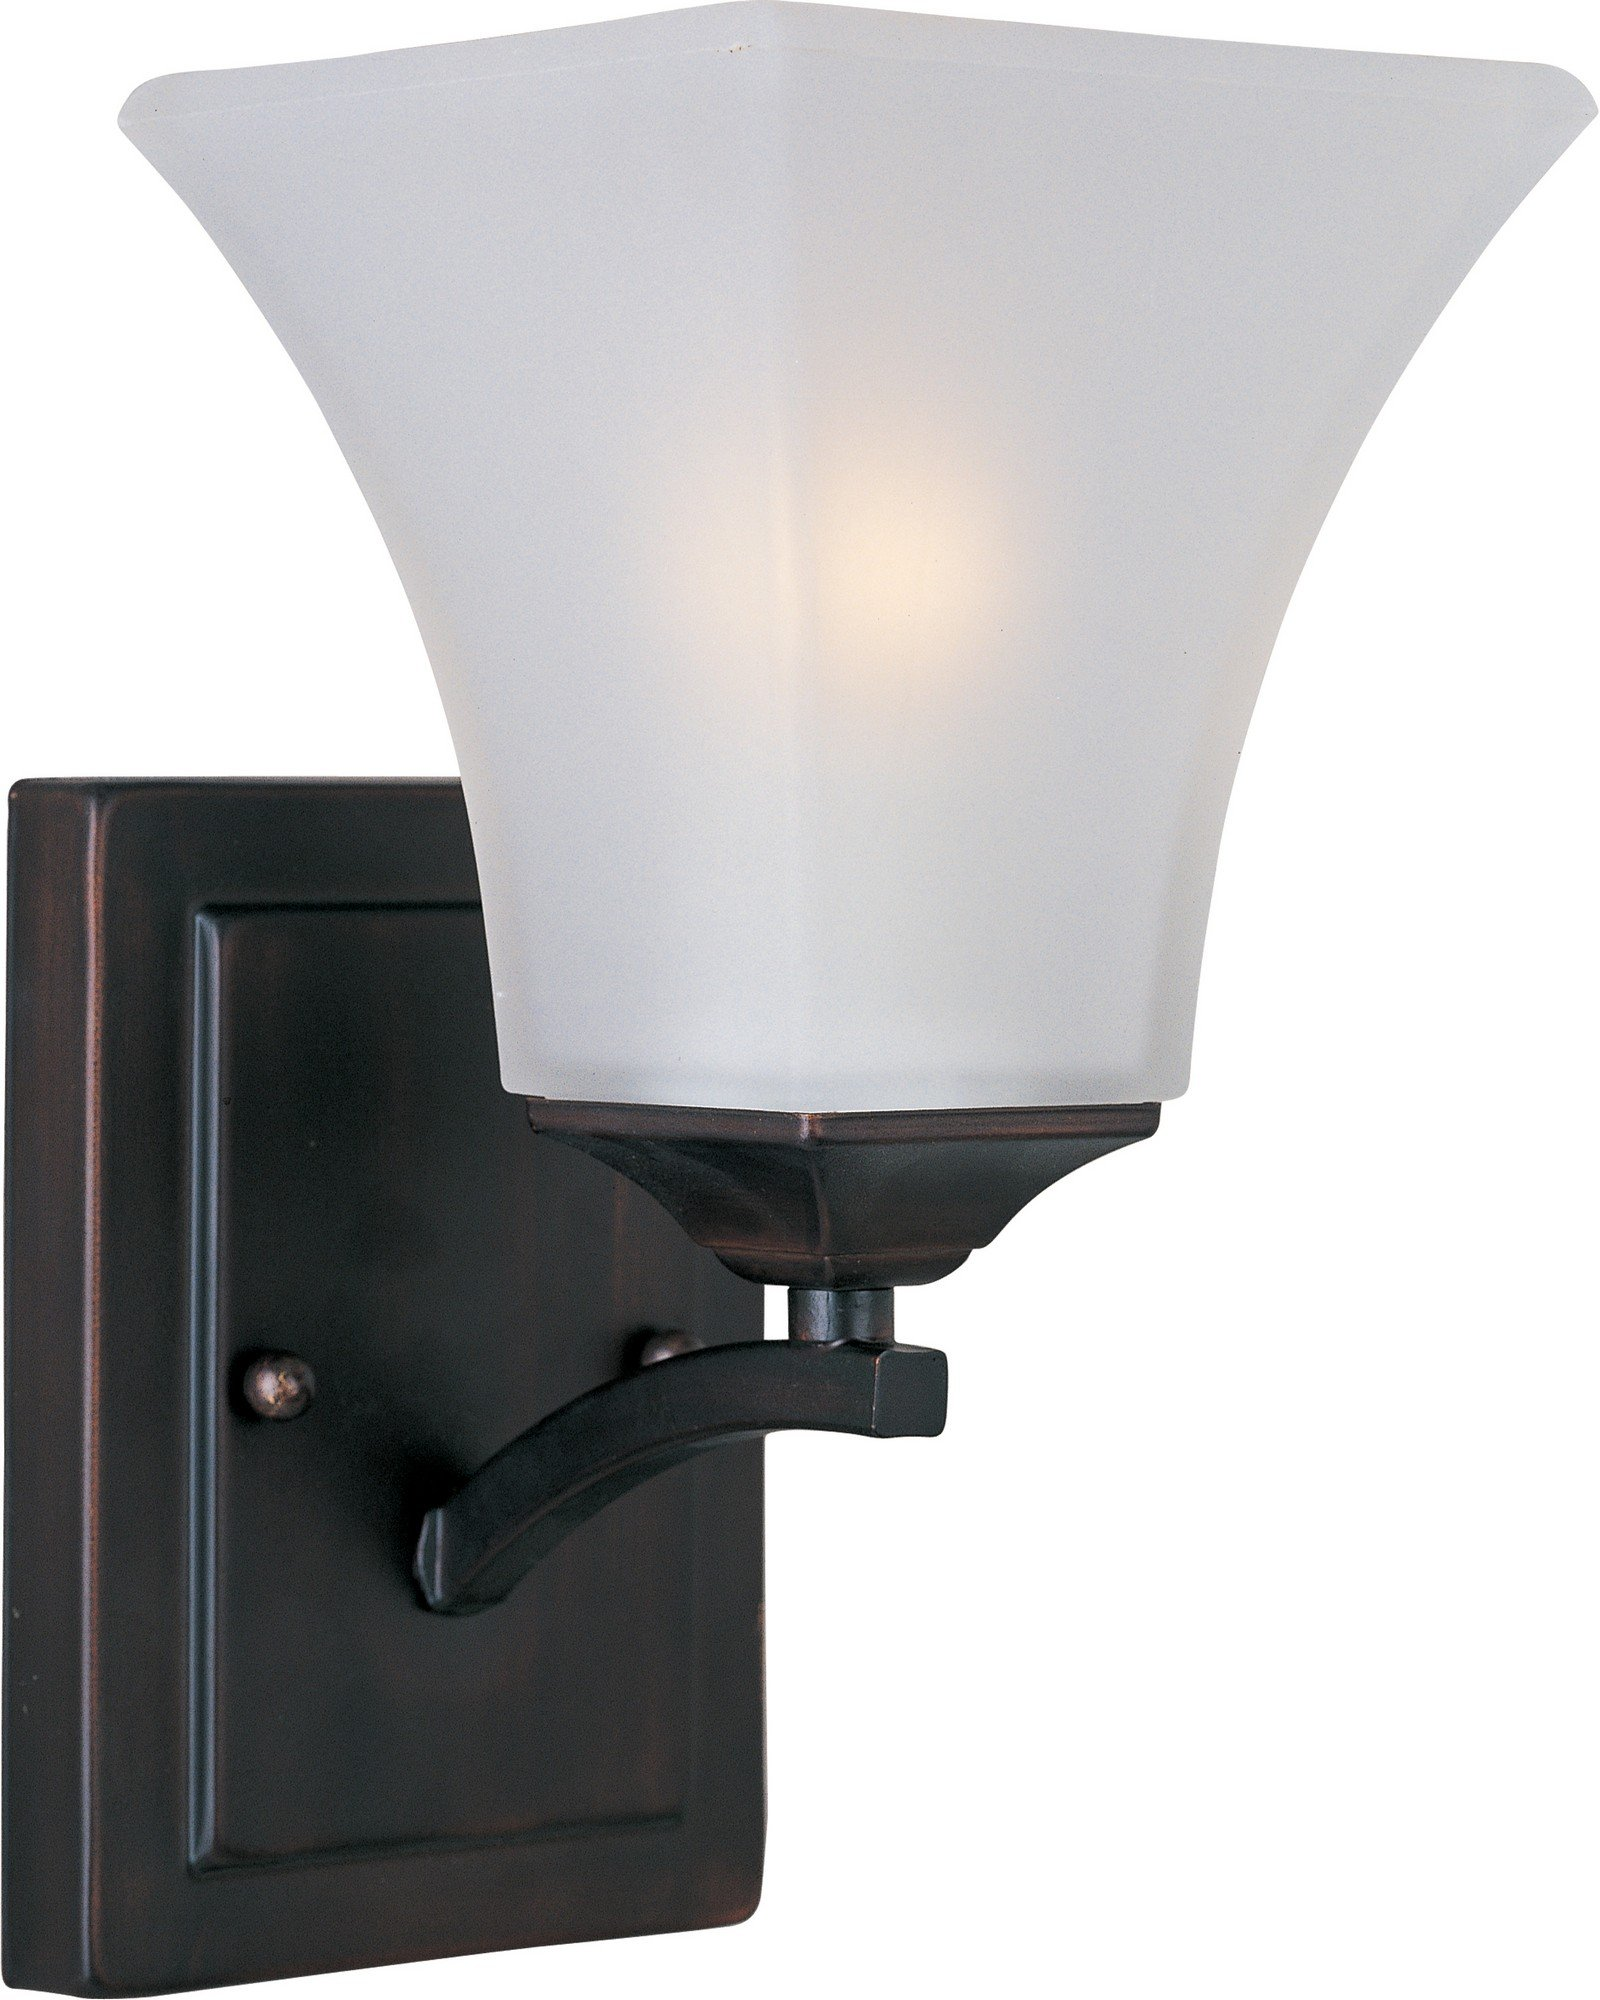 Maxim 20098FTOI Aurora 1-Light Wall Sconce Bath Vanity, Oil Rubbed Bronze Finish, Frosted Glass, MB Incandescent Incandescent Bulb , 100W Max., Damp Safety Rating, Standard Dimmable, Glass Shade Material, 4600 Rated Lumens